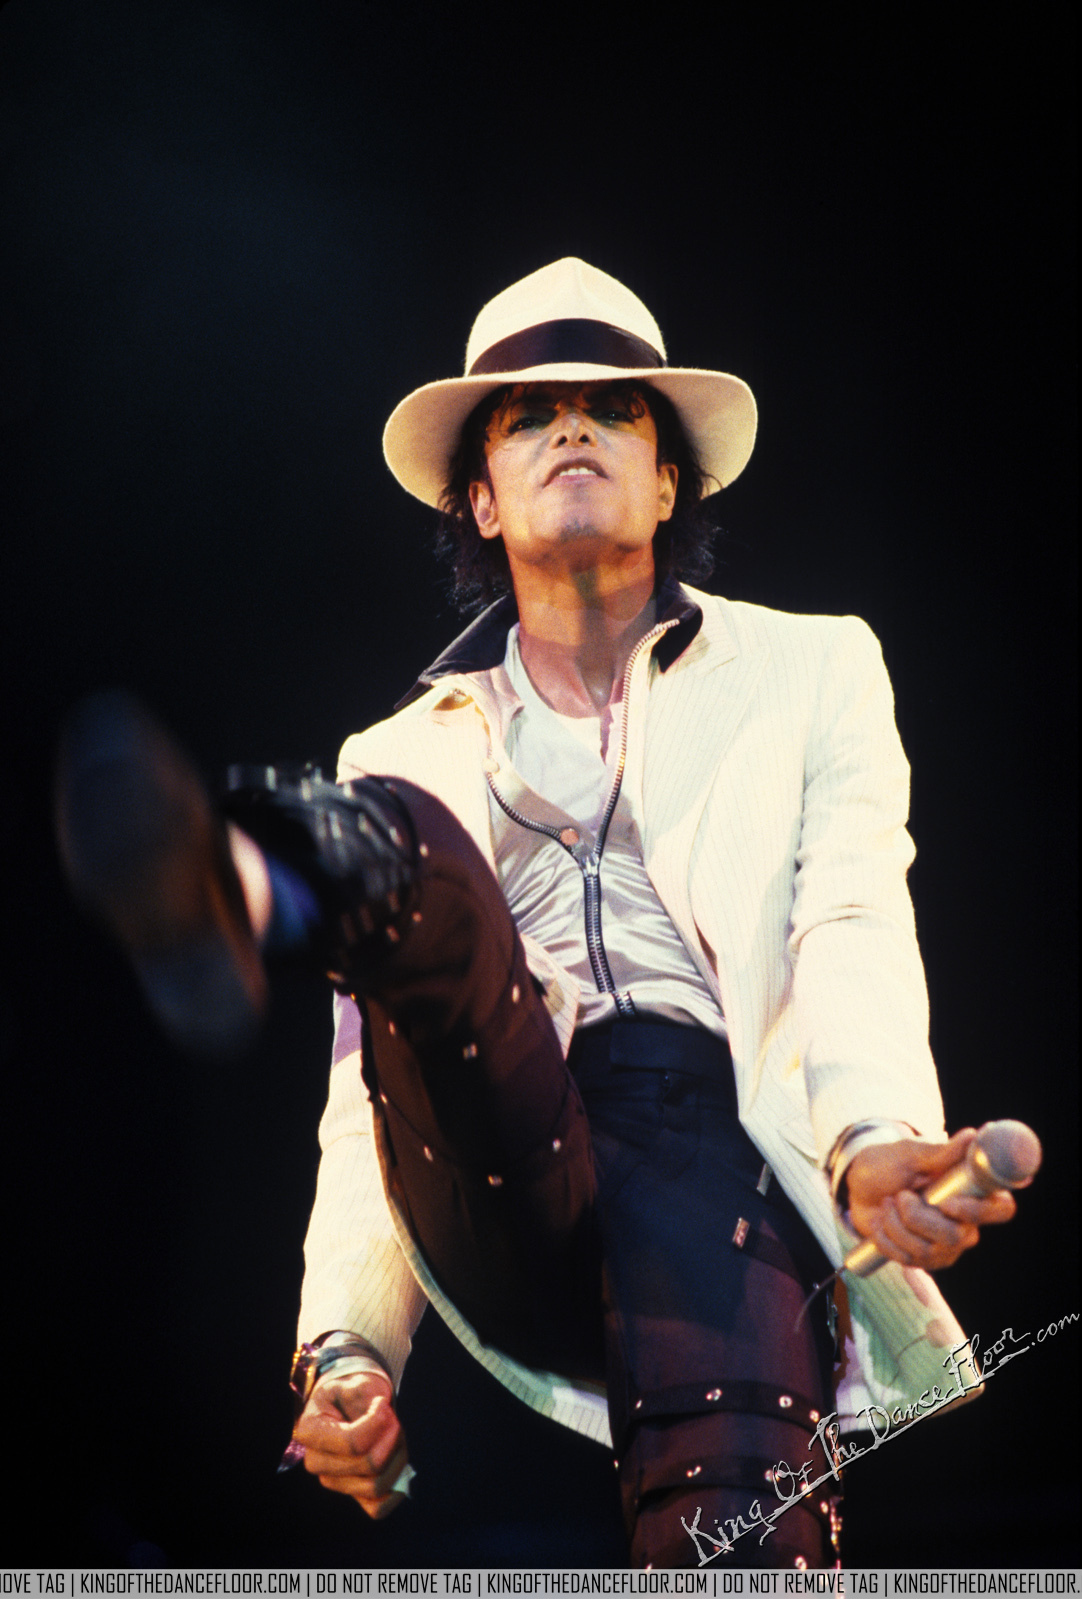 Smooth Criminal performance